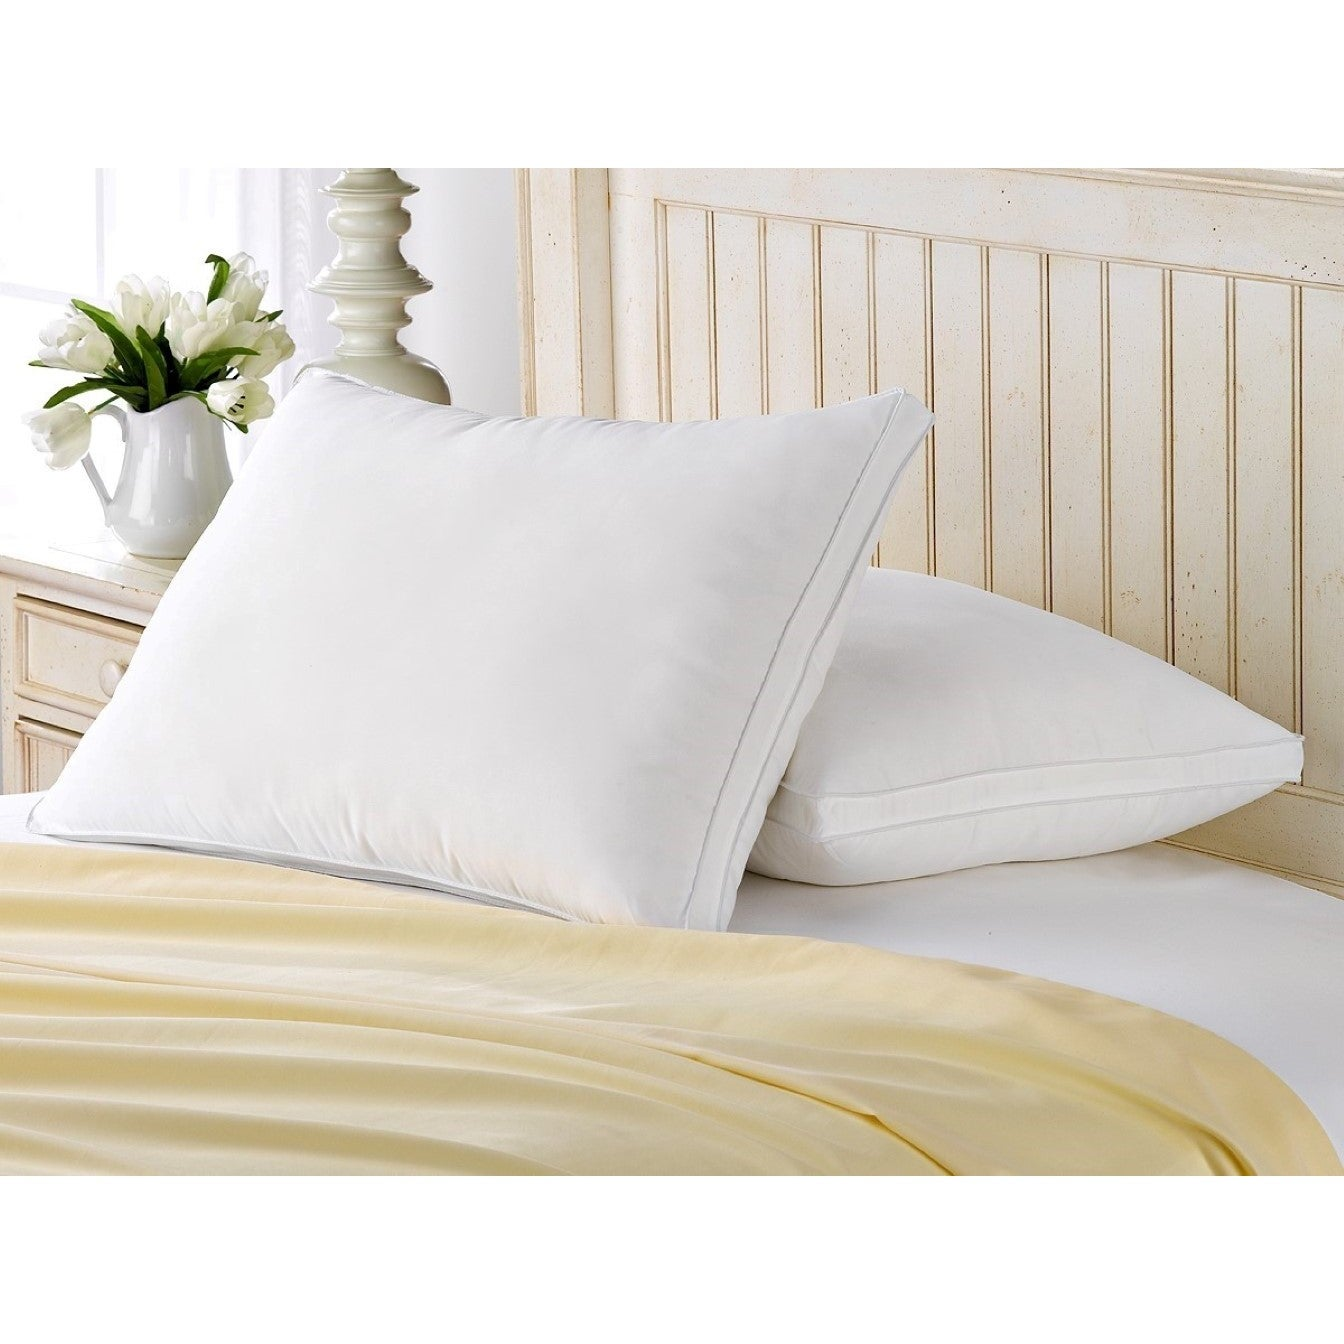 white luxury duck off pillows down feather king size pillow half price pair pipeddoublestitch products